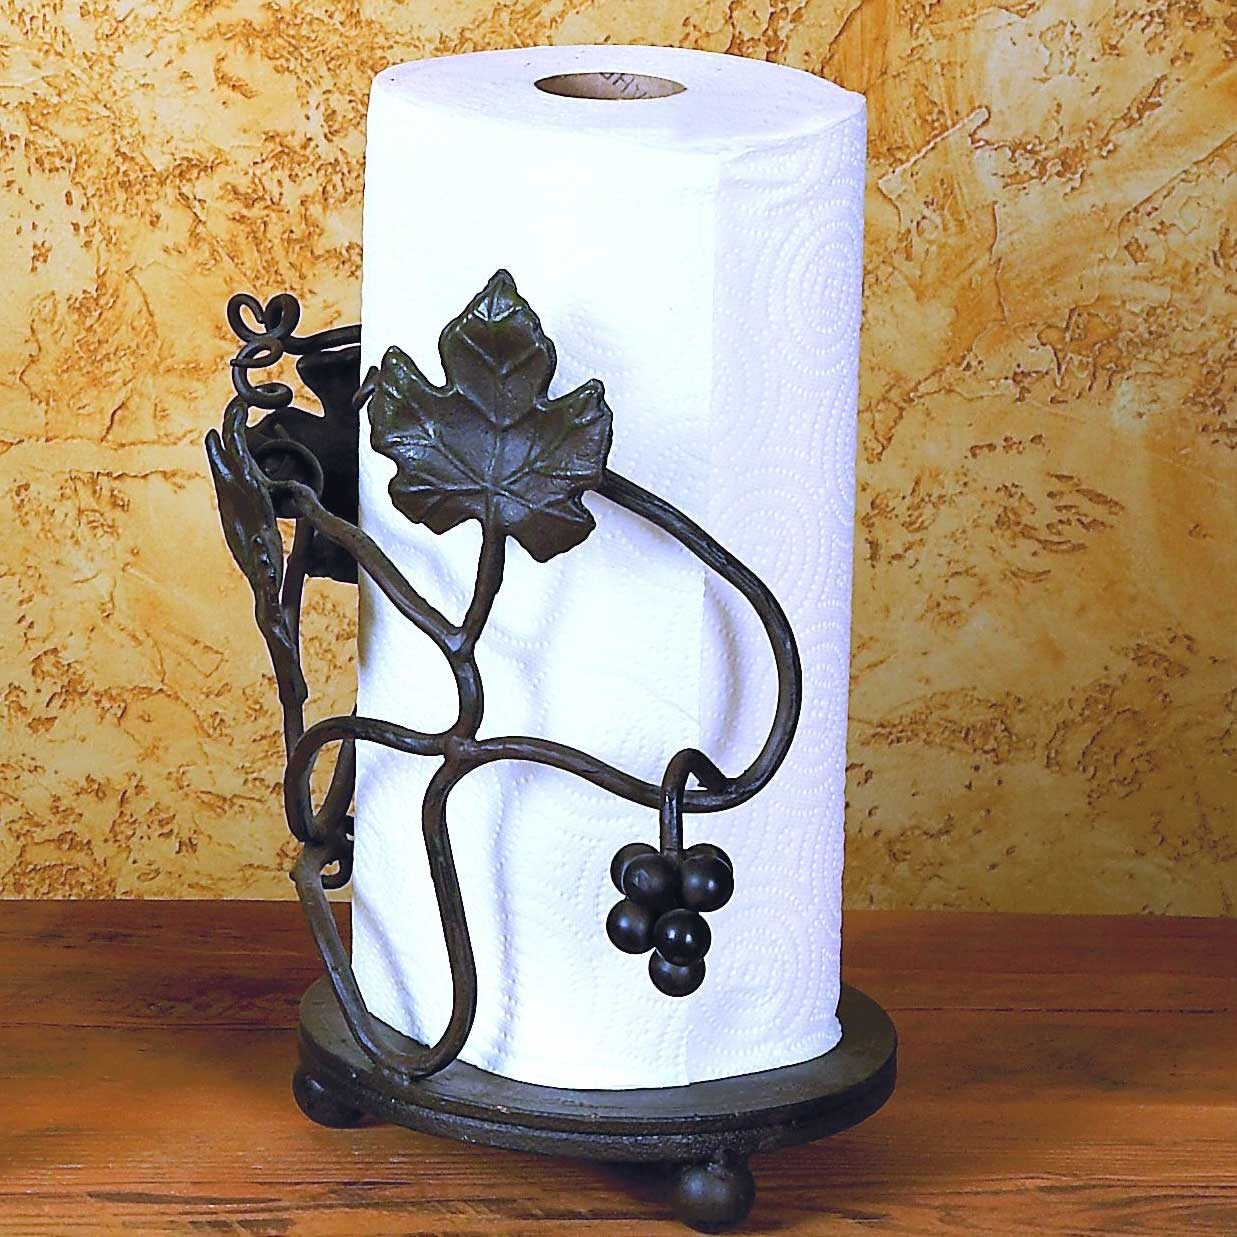 Pictured here is the Wrought Iron Grape Vine Paper Towel Holder by